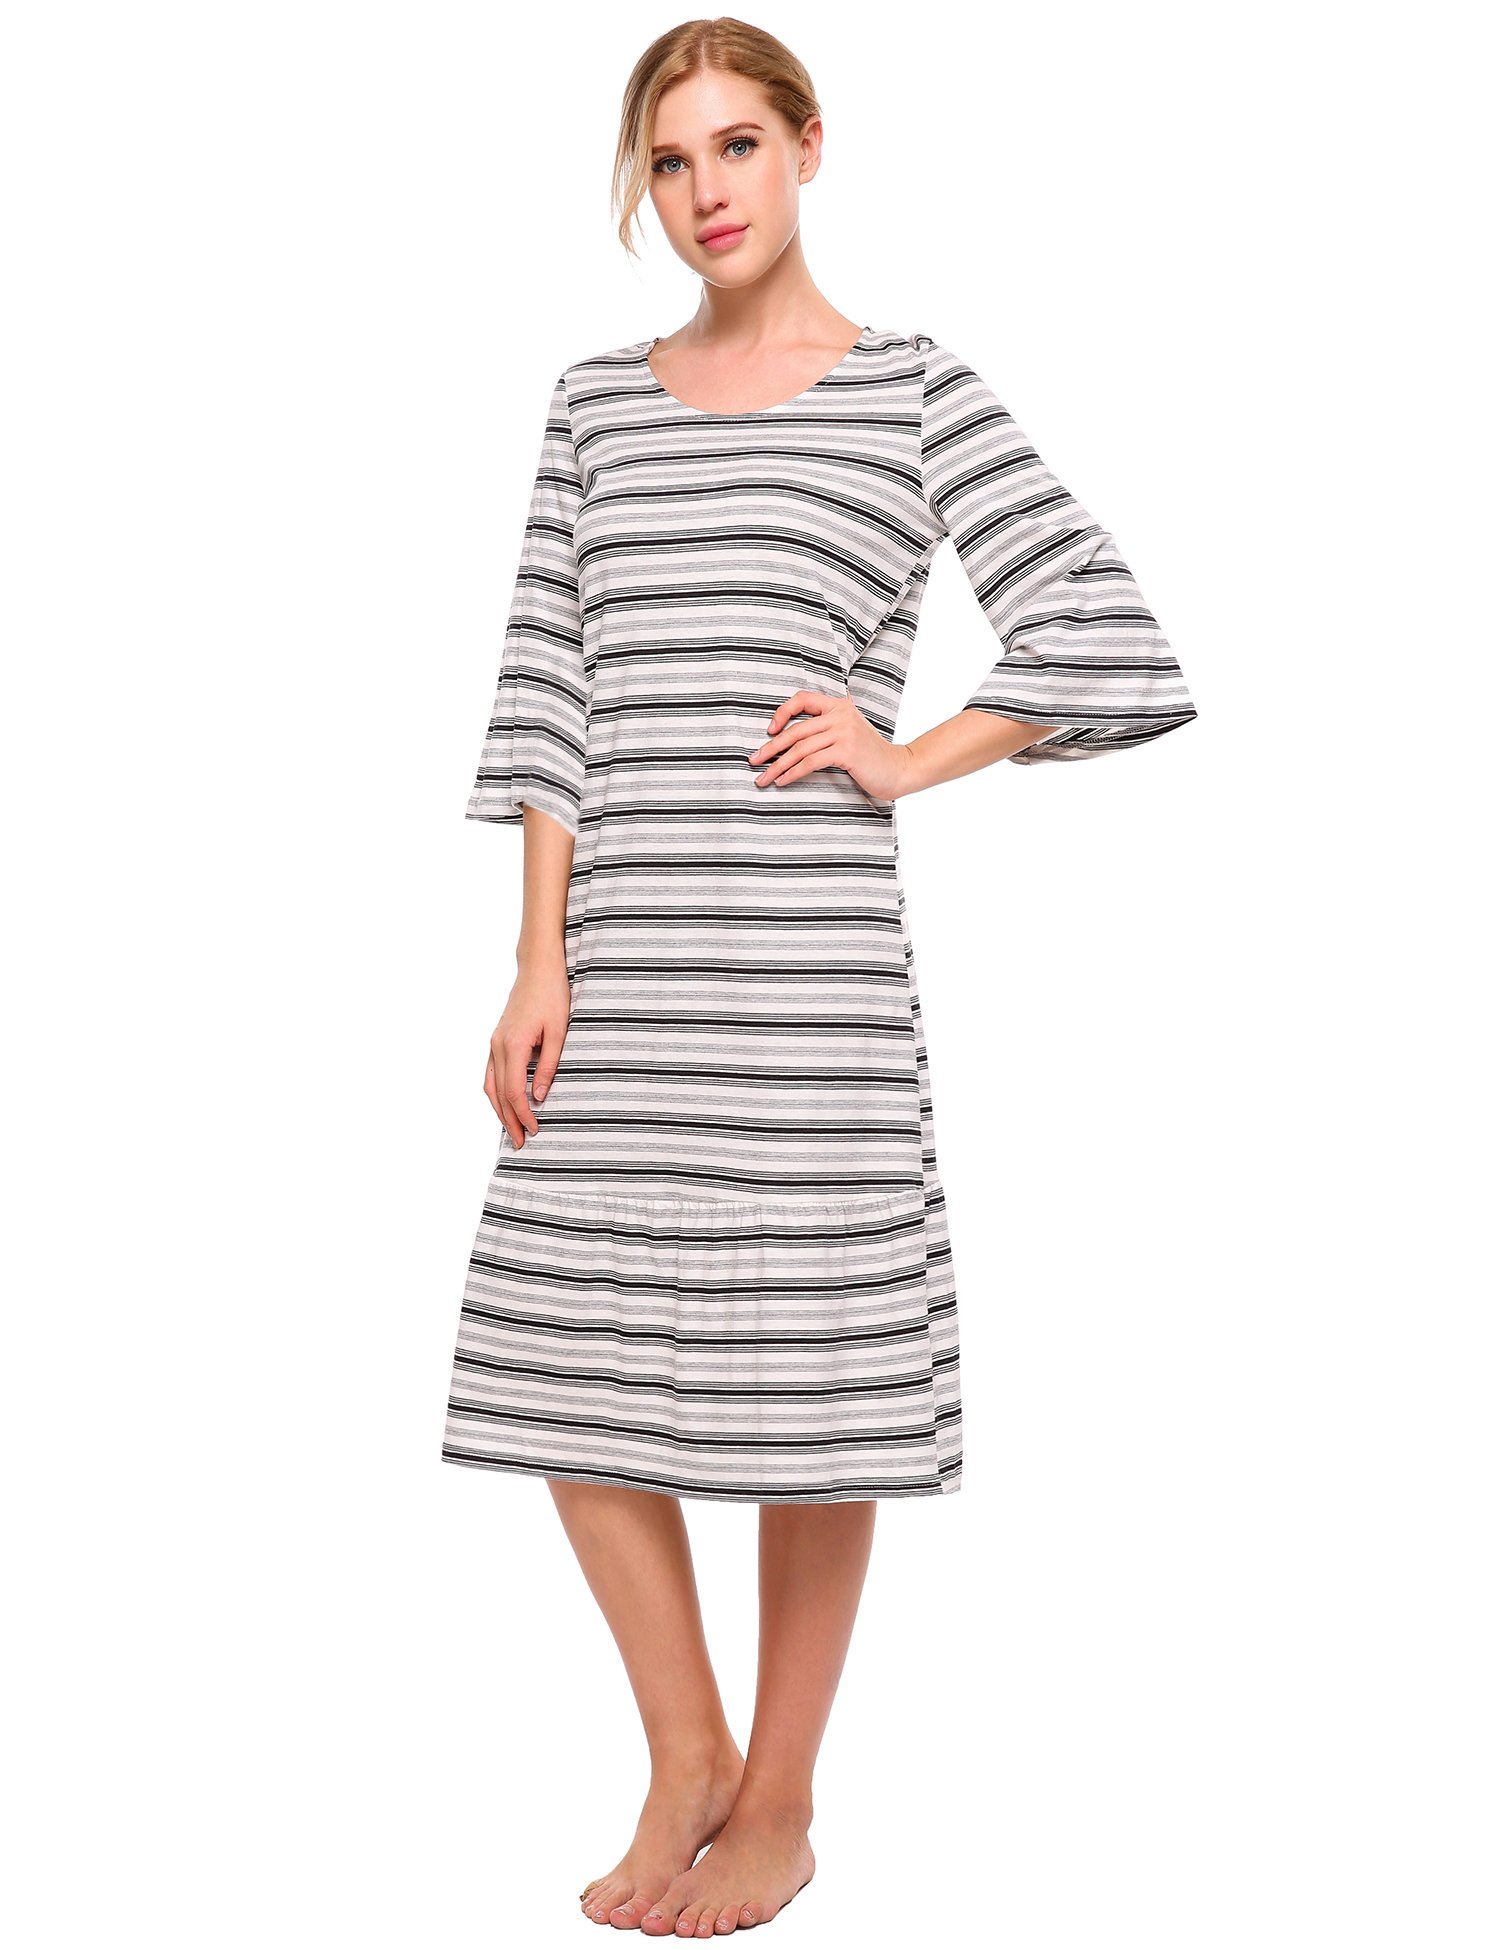 luxilooks Striped Sleepwear Women's Round Neck Long Nightgown 3/4 Sleeve Loungewear Loose Length Casual Nightshirt S-XXL